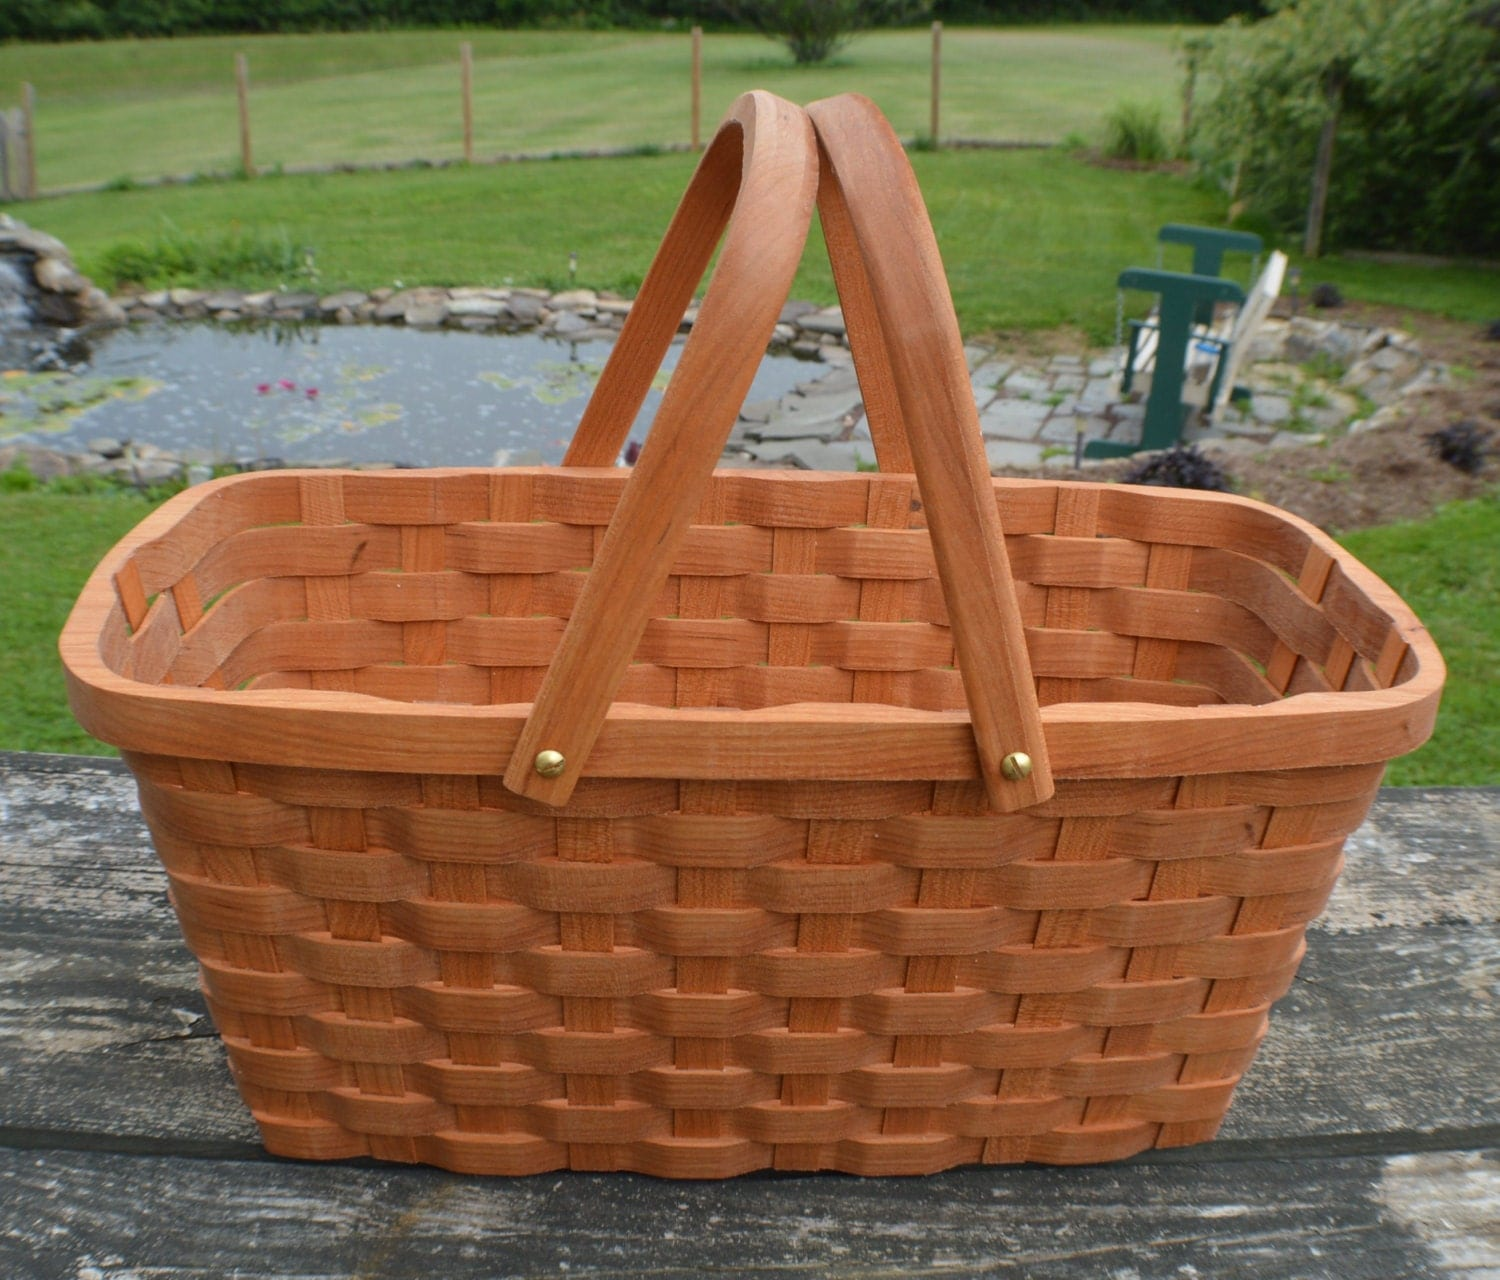 Knitting Basket With Handles : Knitting supplies tote basket with handles cherry wood